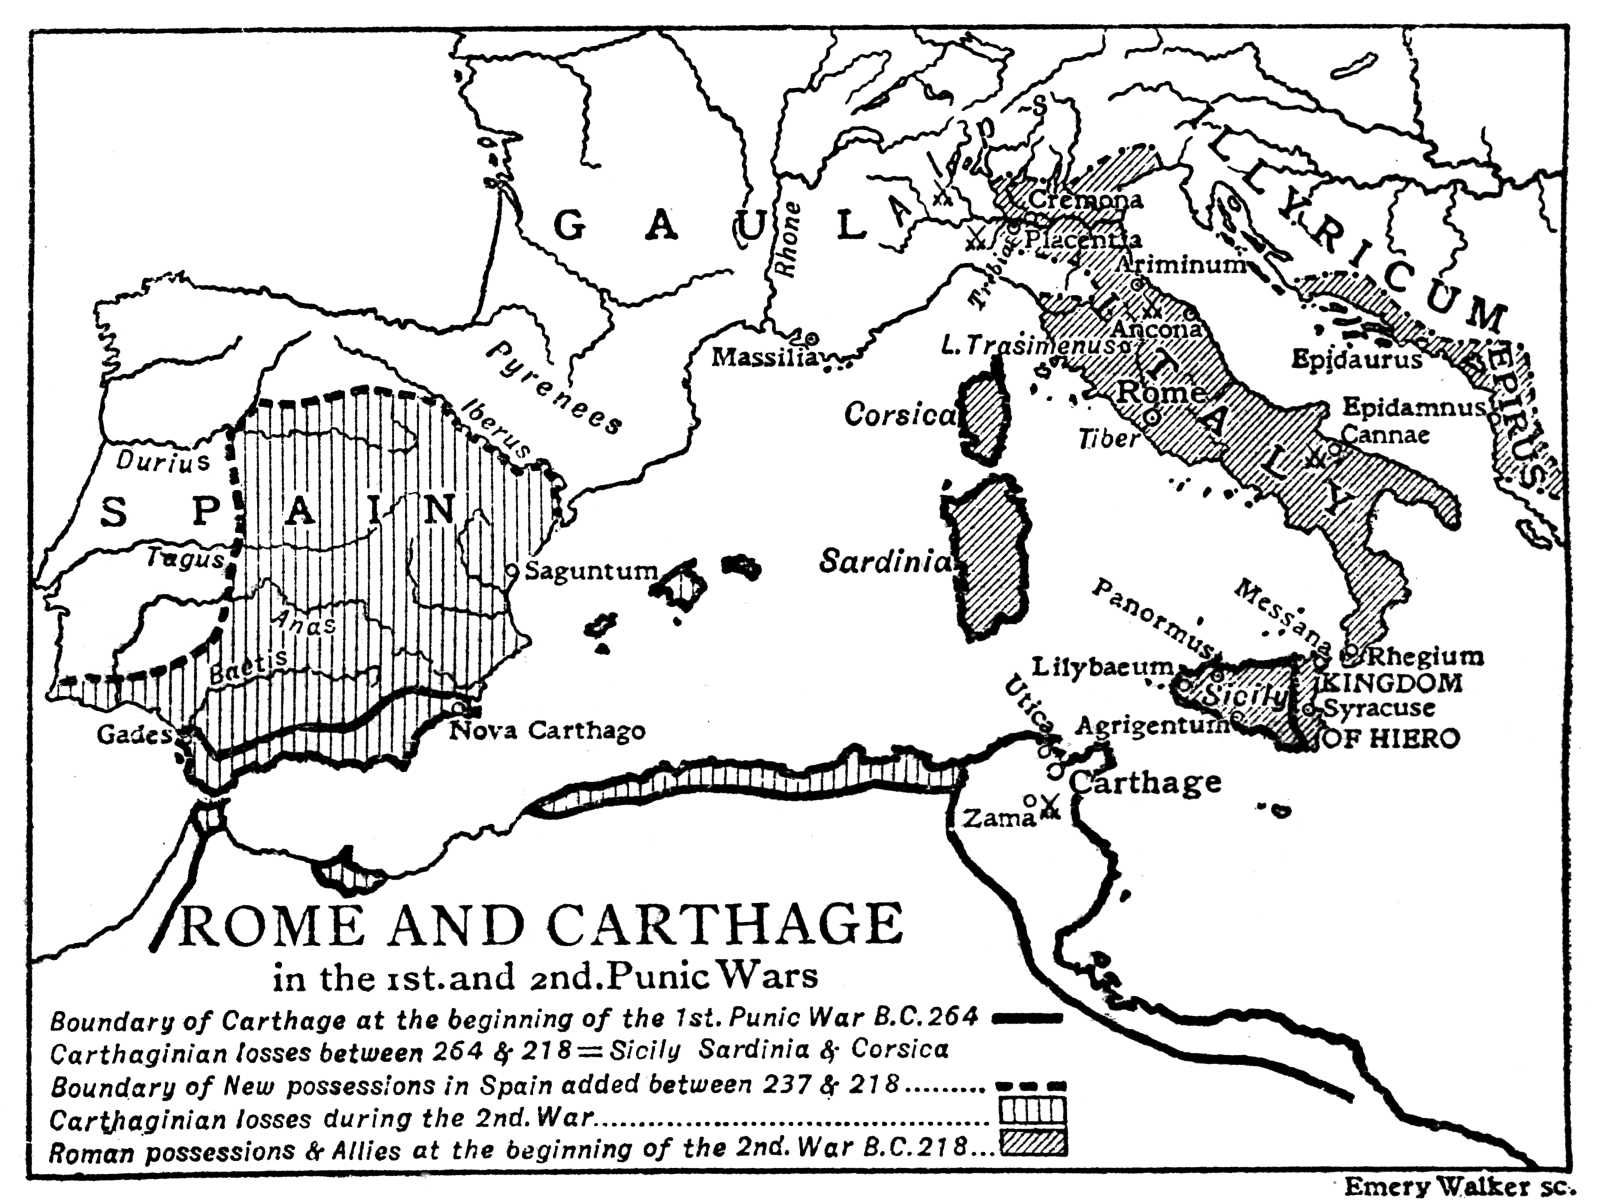 Week5 Map Of Rome And Carthage In The 1st And 2nd Punic Wars 1933